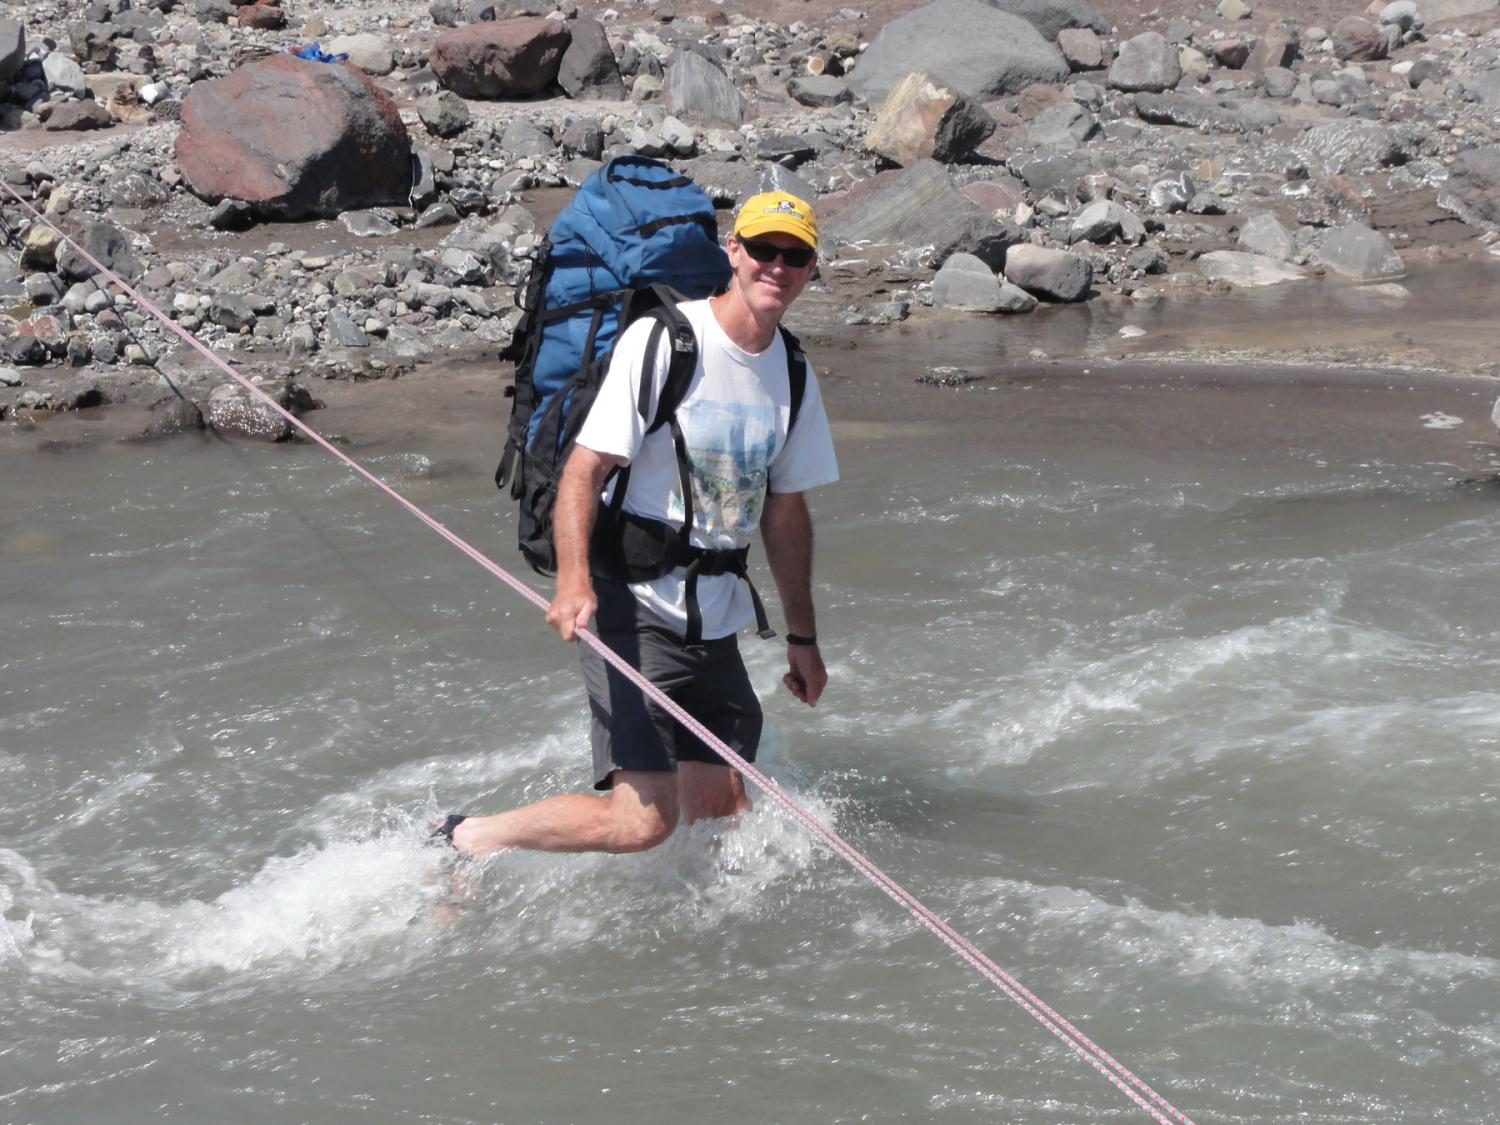 Faculty member John Pitlick crossing the North Fork of the Toutle River near Mount St. Helens, WA. August 2010